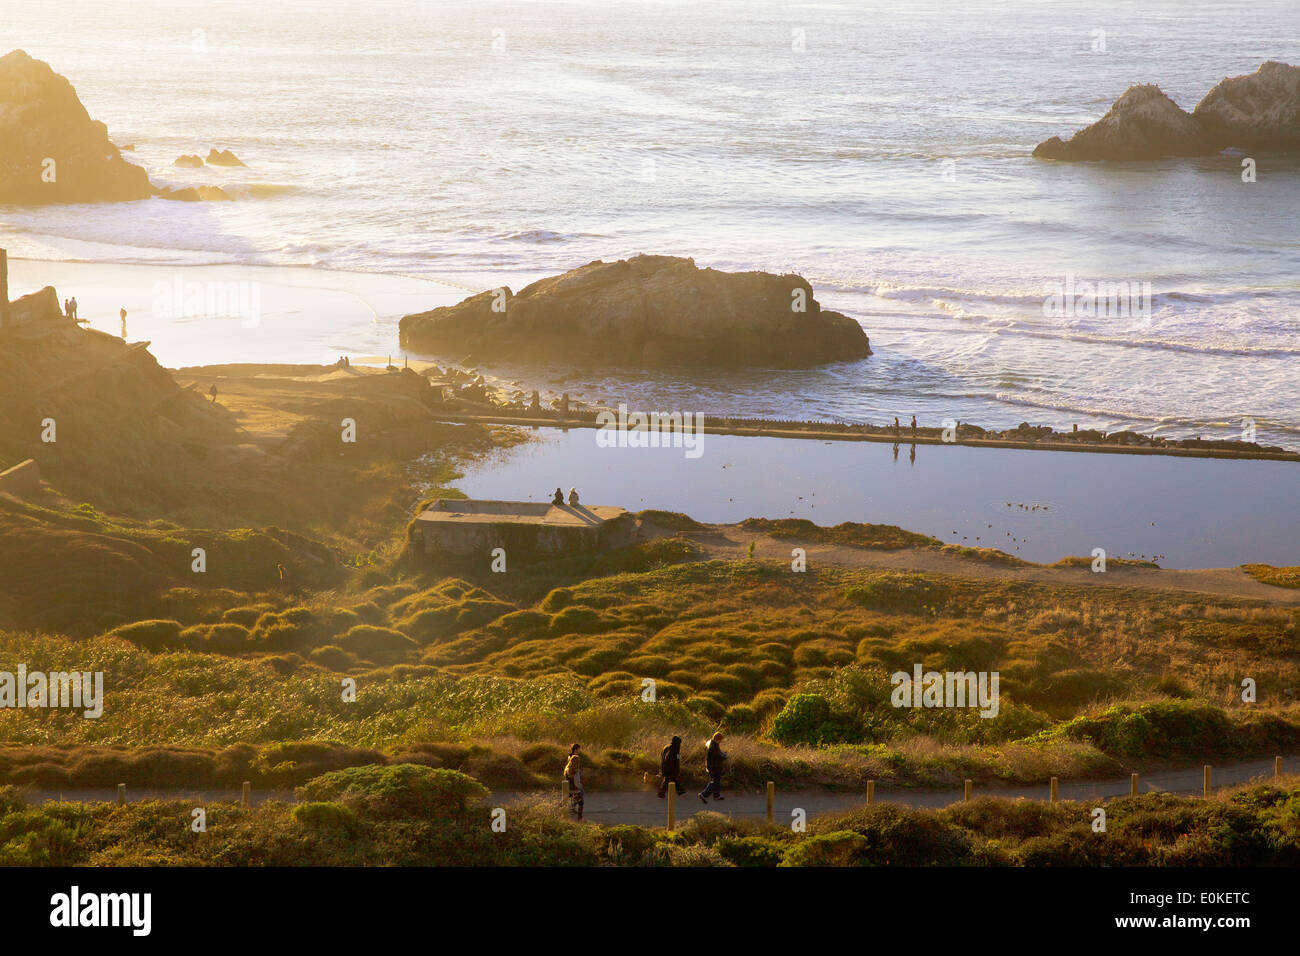 People hike around on the paths and walk along the sea wall at the Sutro Bath Ruins at Lands End in San Francisco, California. - Stock Image